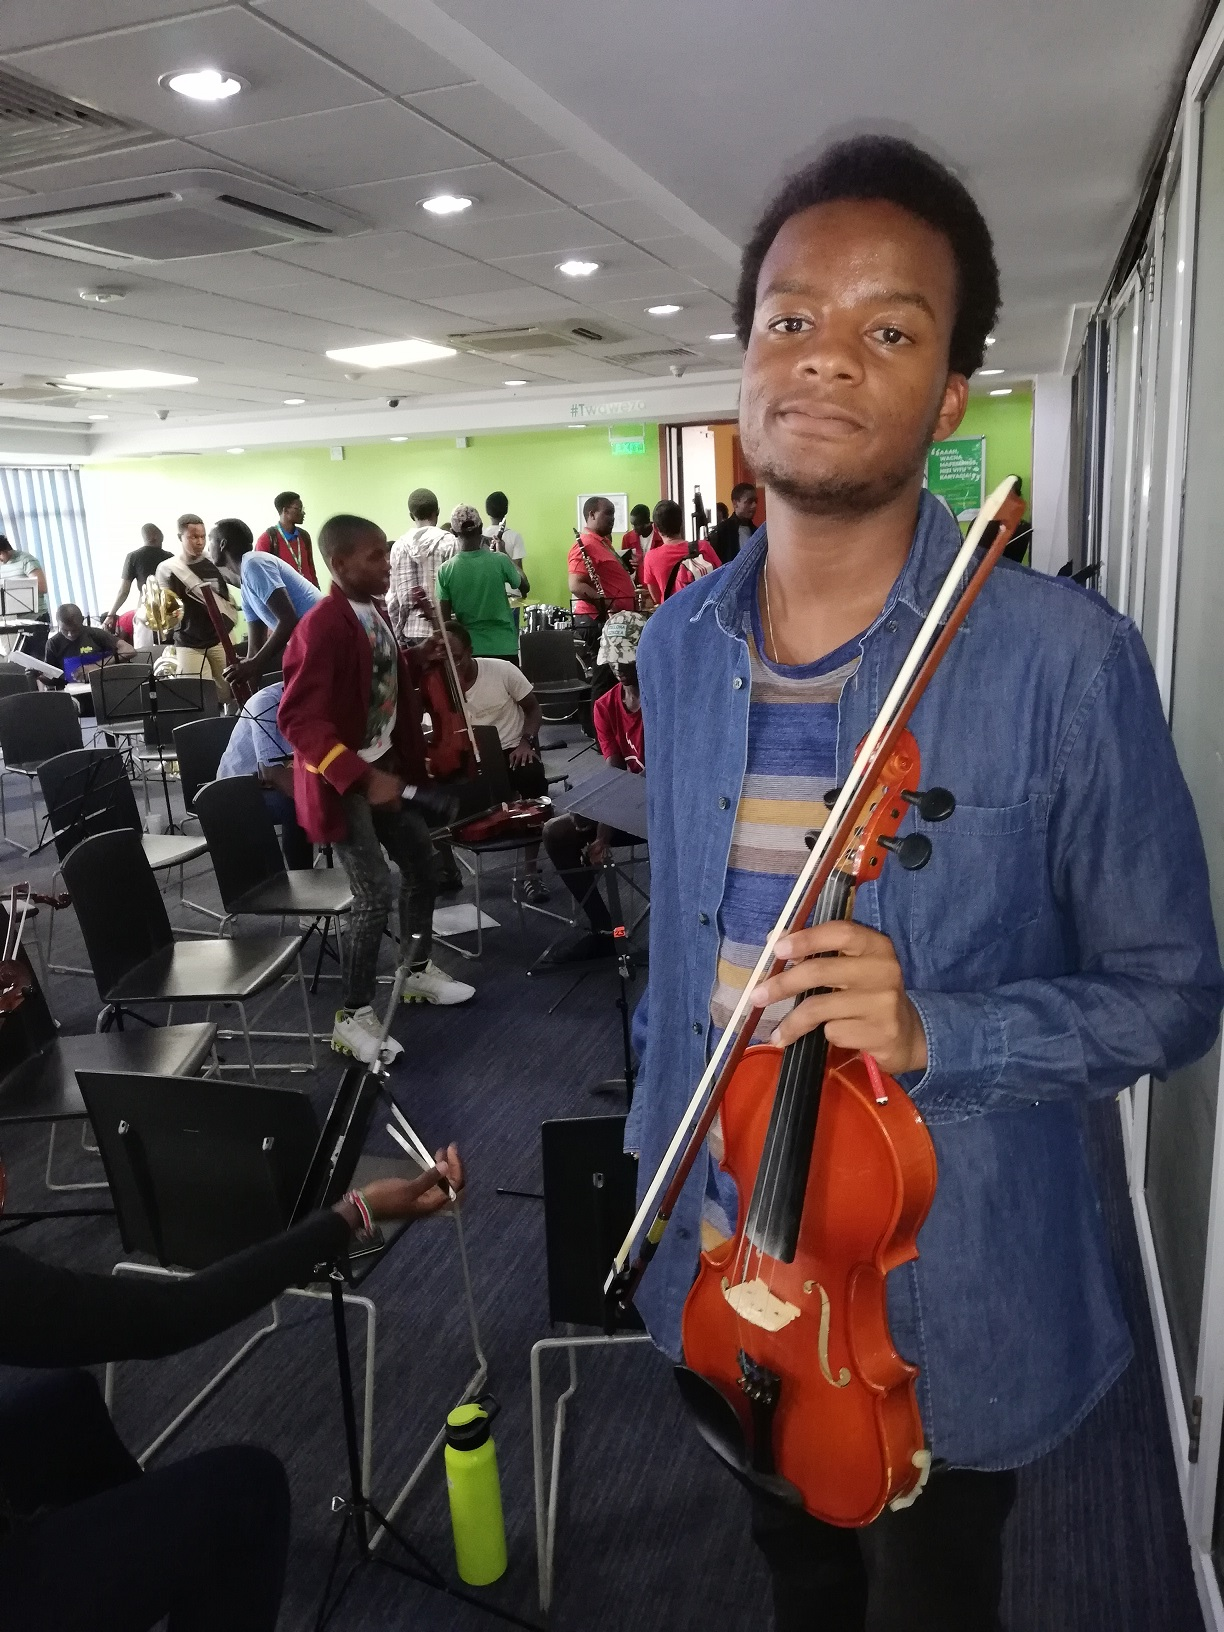 Life At The Safaricom Youth Orchestra In The Words Of Ethan Murenga #SafaricomJazz